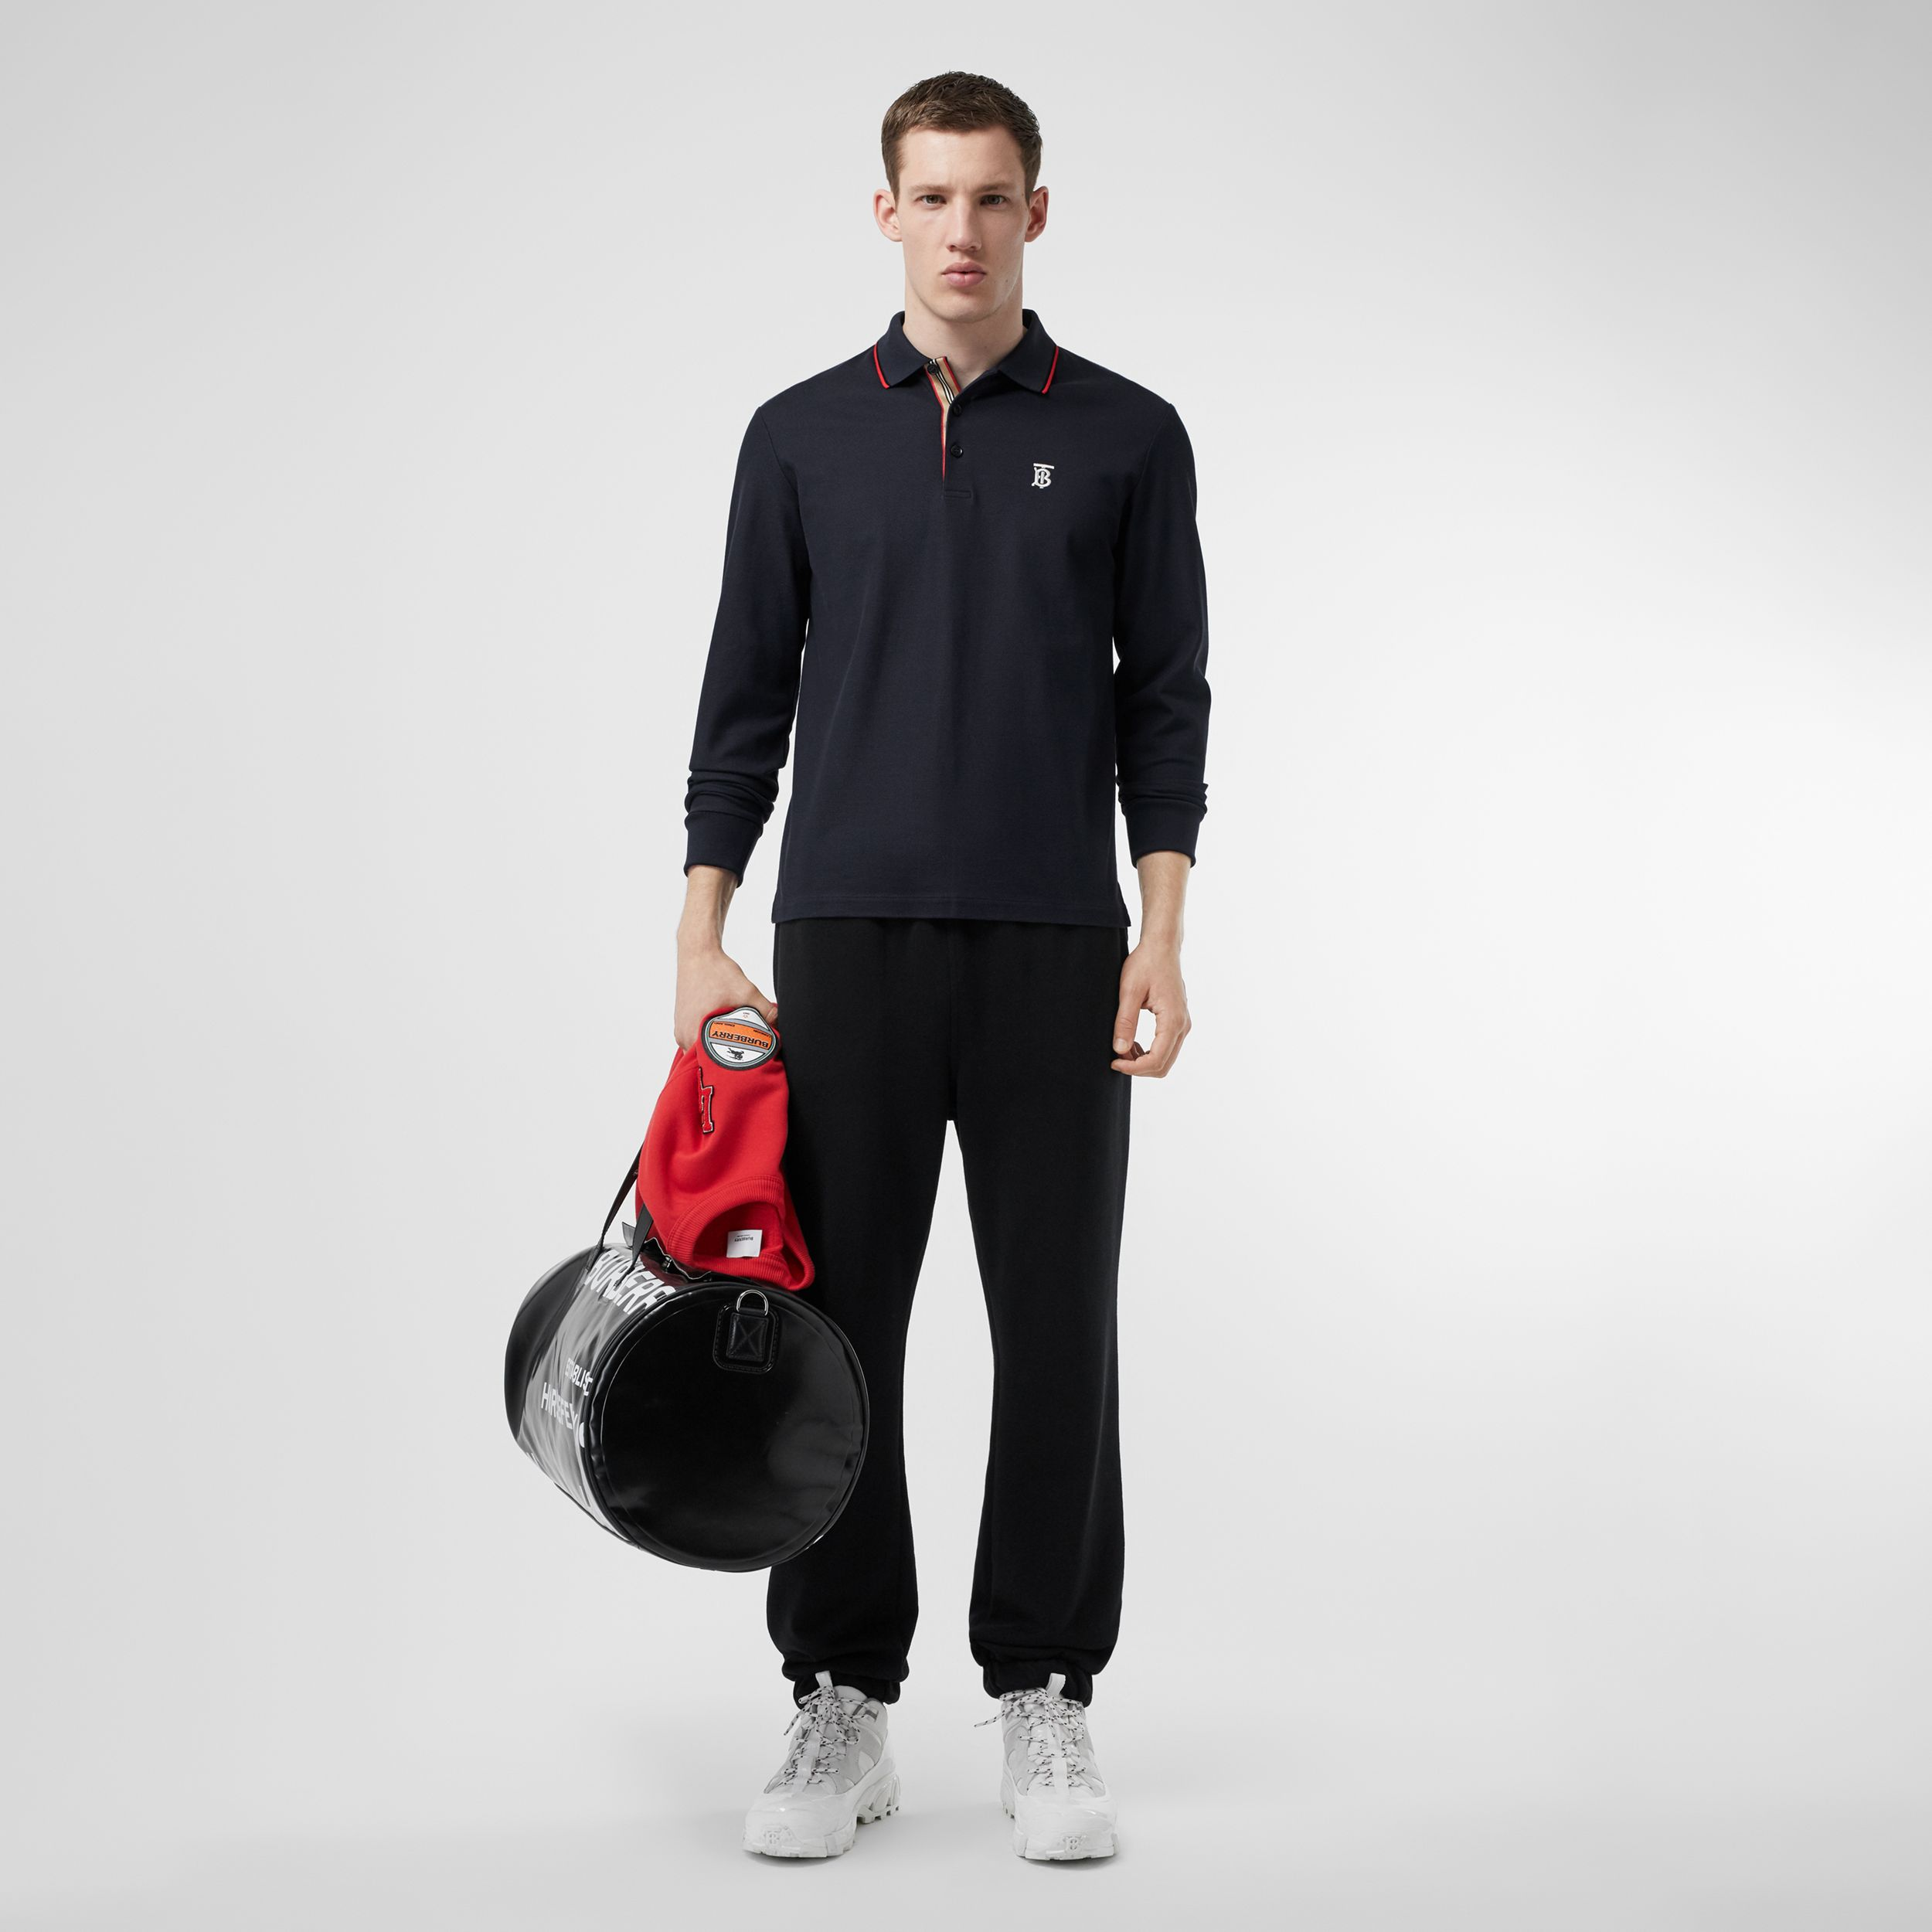 Long-sleeve Monogram Motif Cotton Piqué Polo Shirt in Navy - Men | Burberry - 1